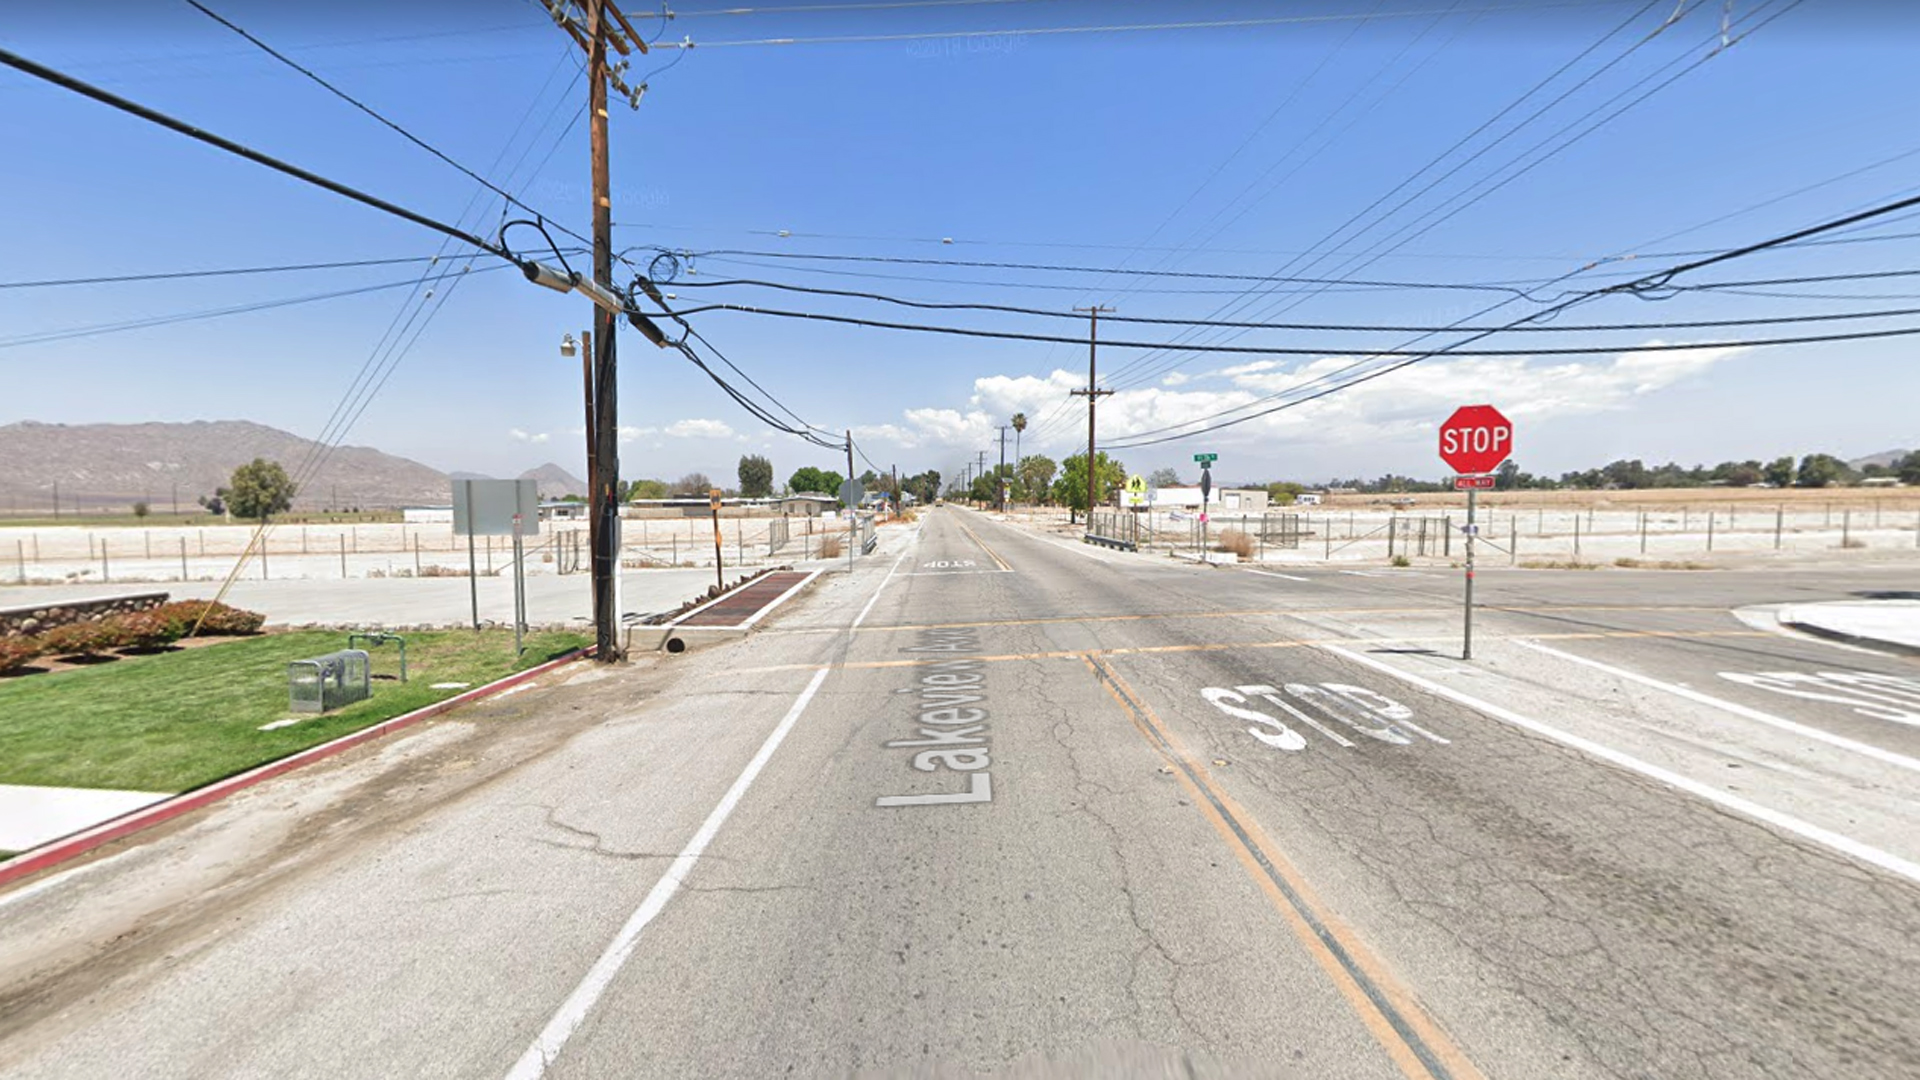 The intersection of Lakeview Avenue and 11th Street in Nuevo, as viewed in a Google Street View image.